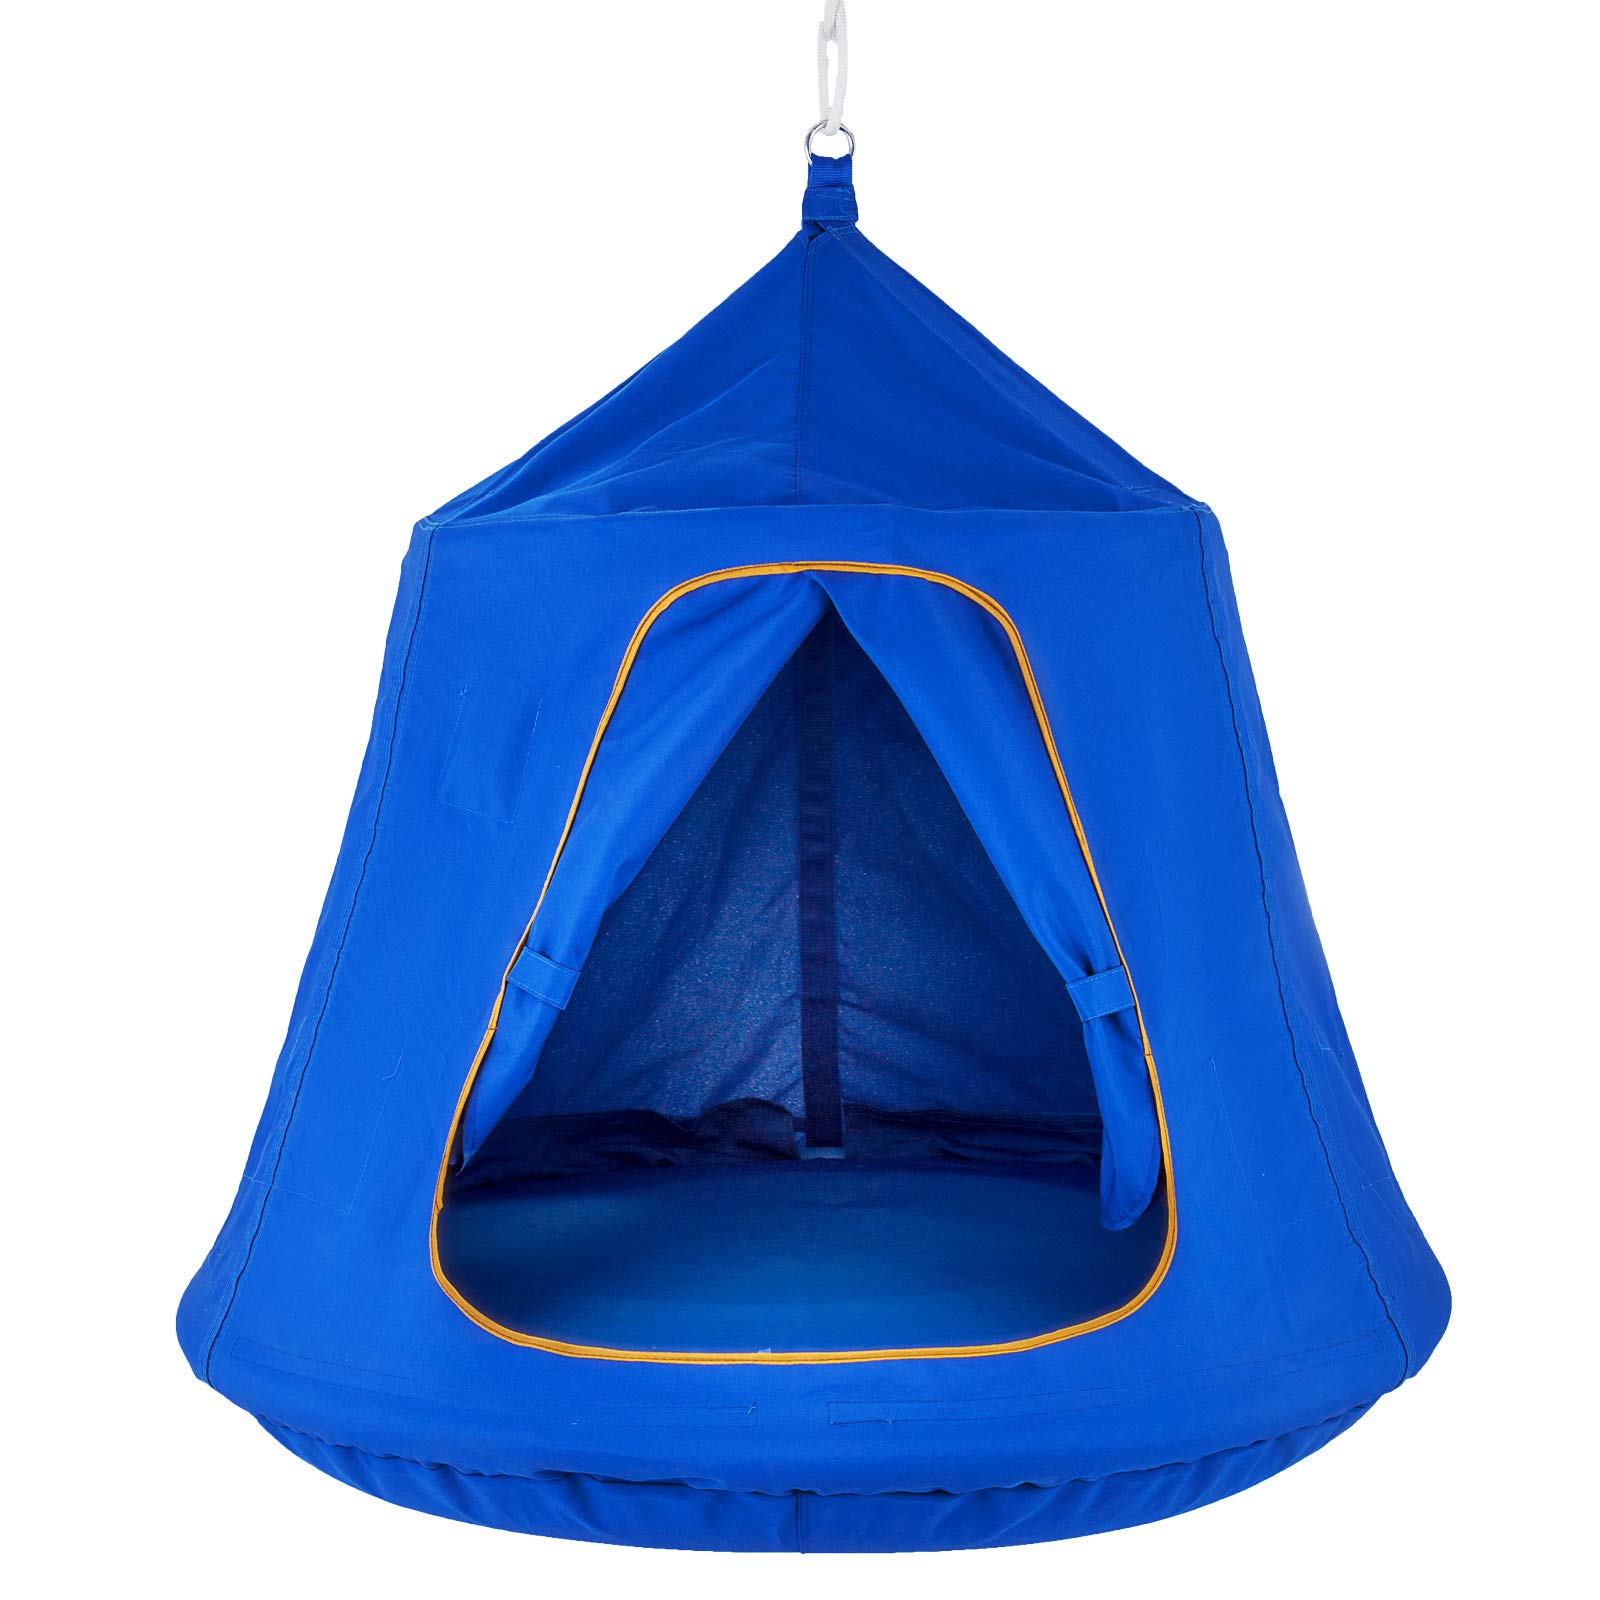 Mophorn Hanging Tree Tent 45 diam x 54 H Hanging Tent Swing Tent Waterproof Hanging Tree&Ceiling Hammock Tent Green Kids Outdoor Tents Playhouses (Blue) by Mophorn (Image #5)